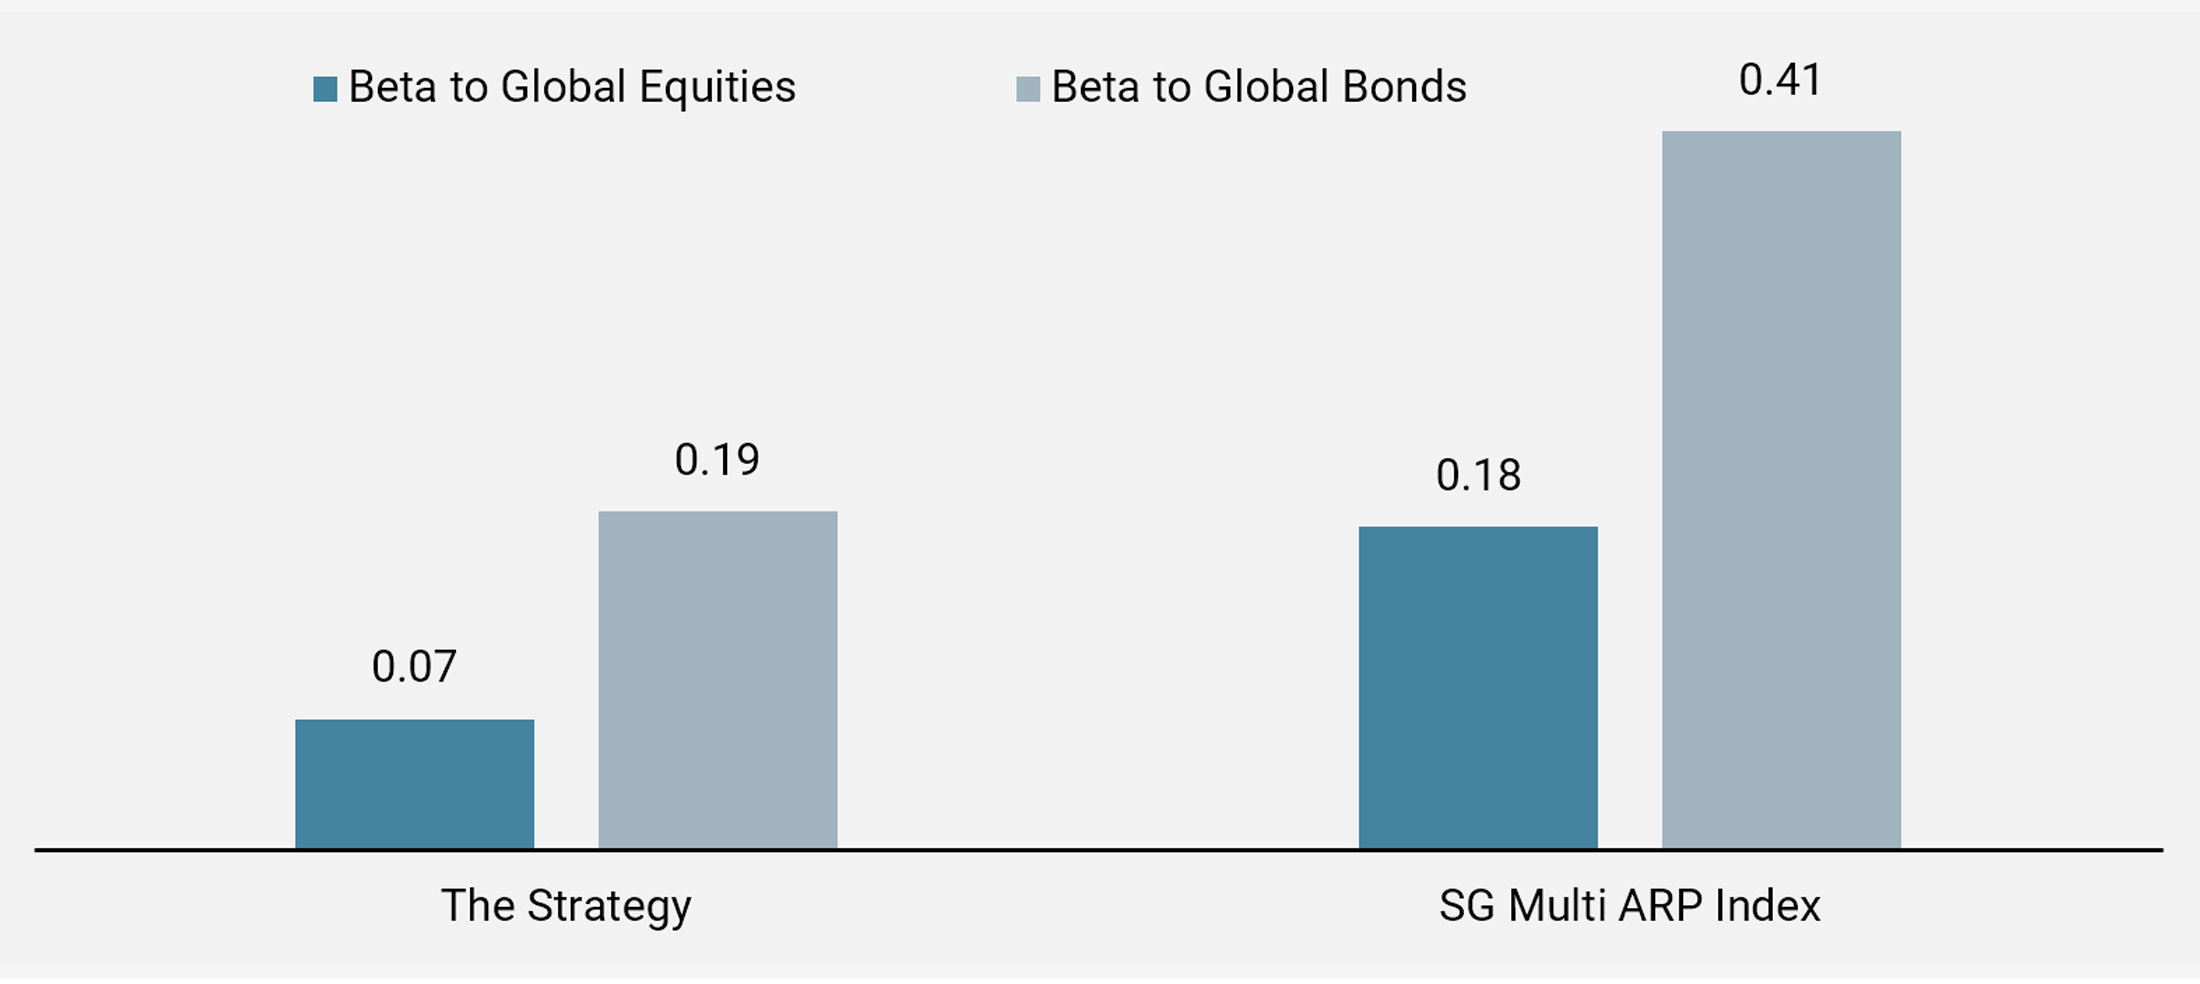 Figure 6: Beta to Global Equities and Global Bonds Since Inception